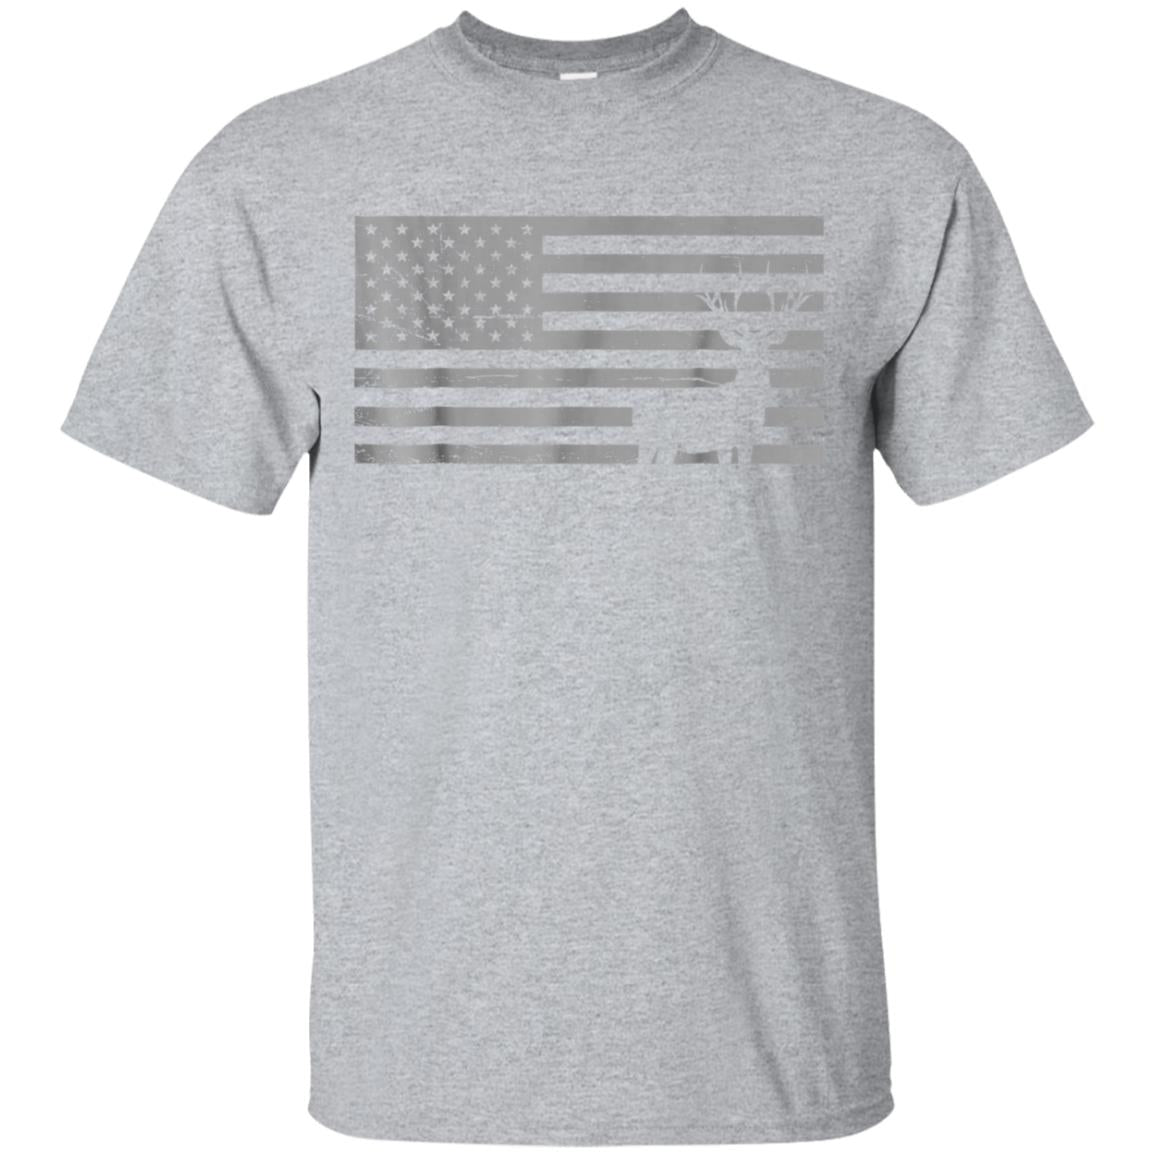 Deer Hunting And America Flag T Shirt Hunting Lover Gift 99promocode